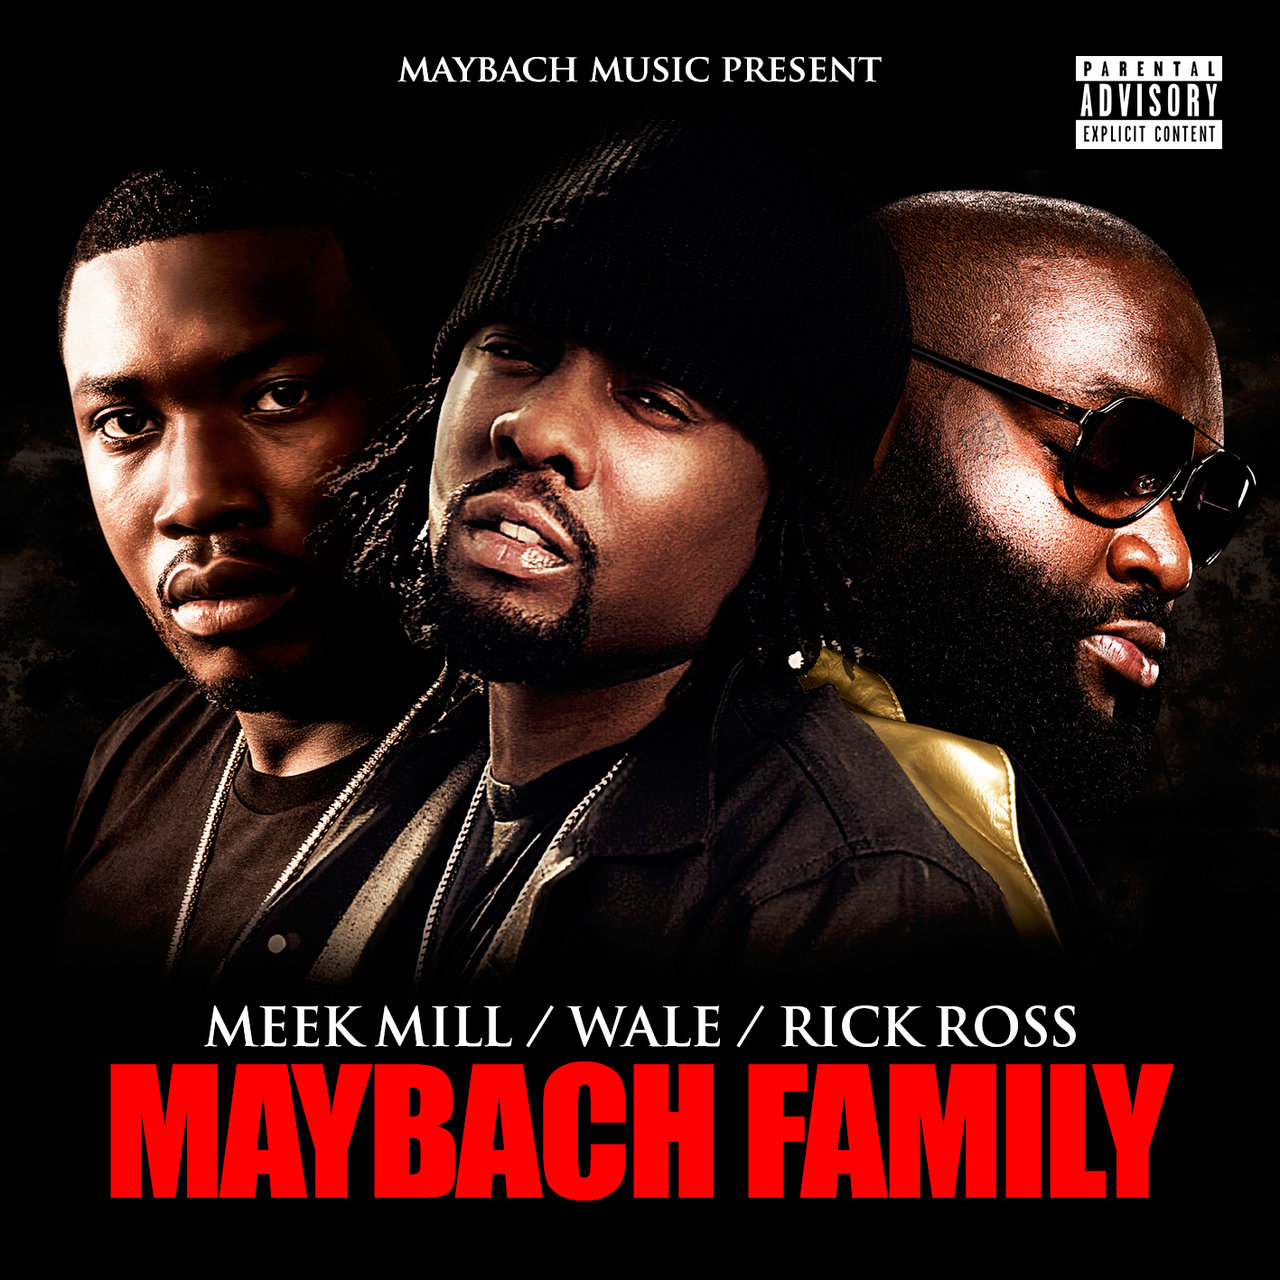 Maybach Family